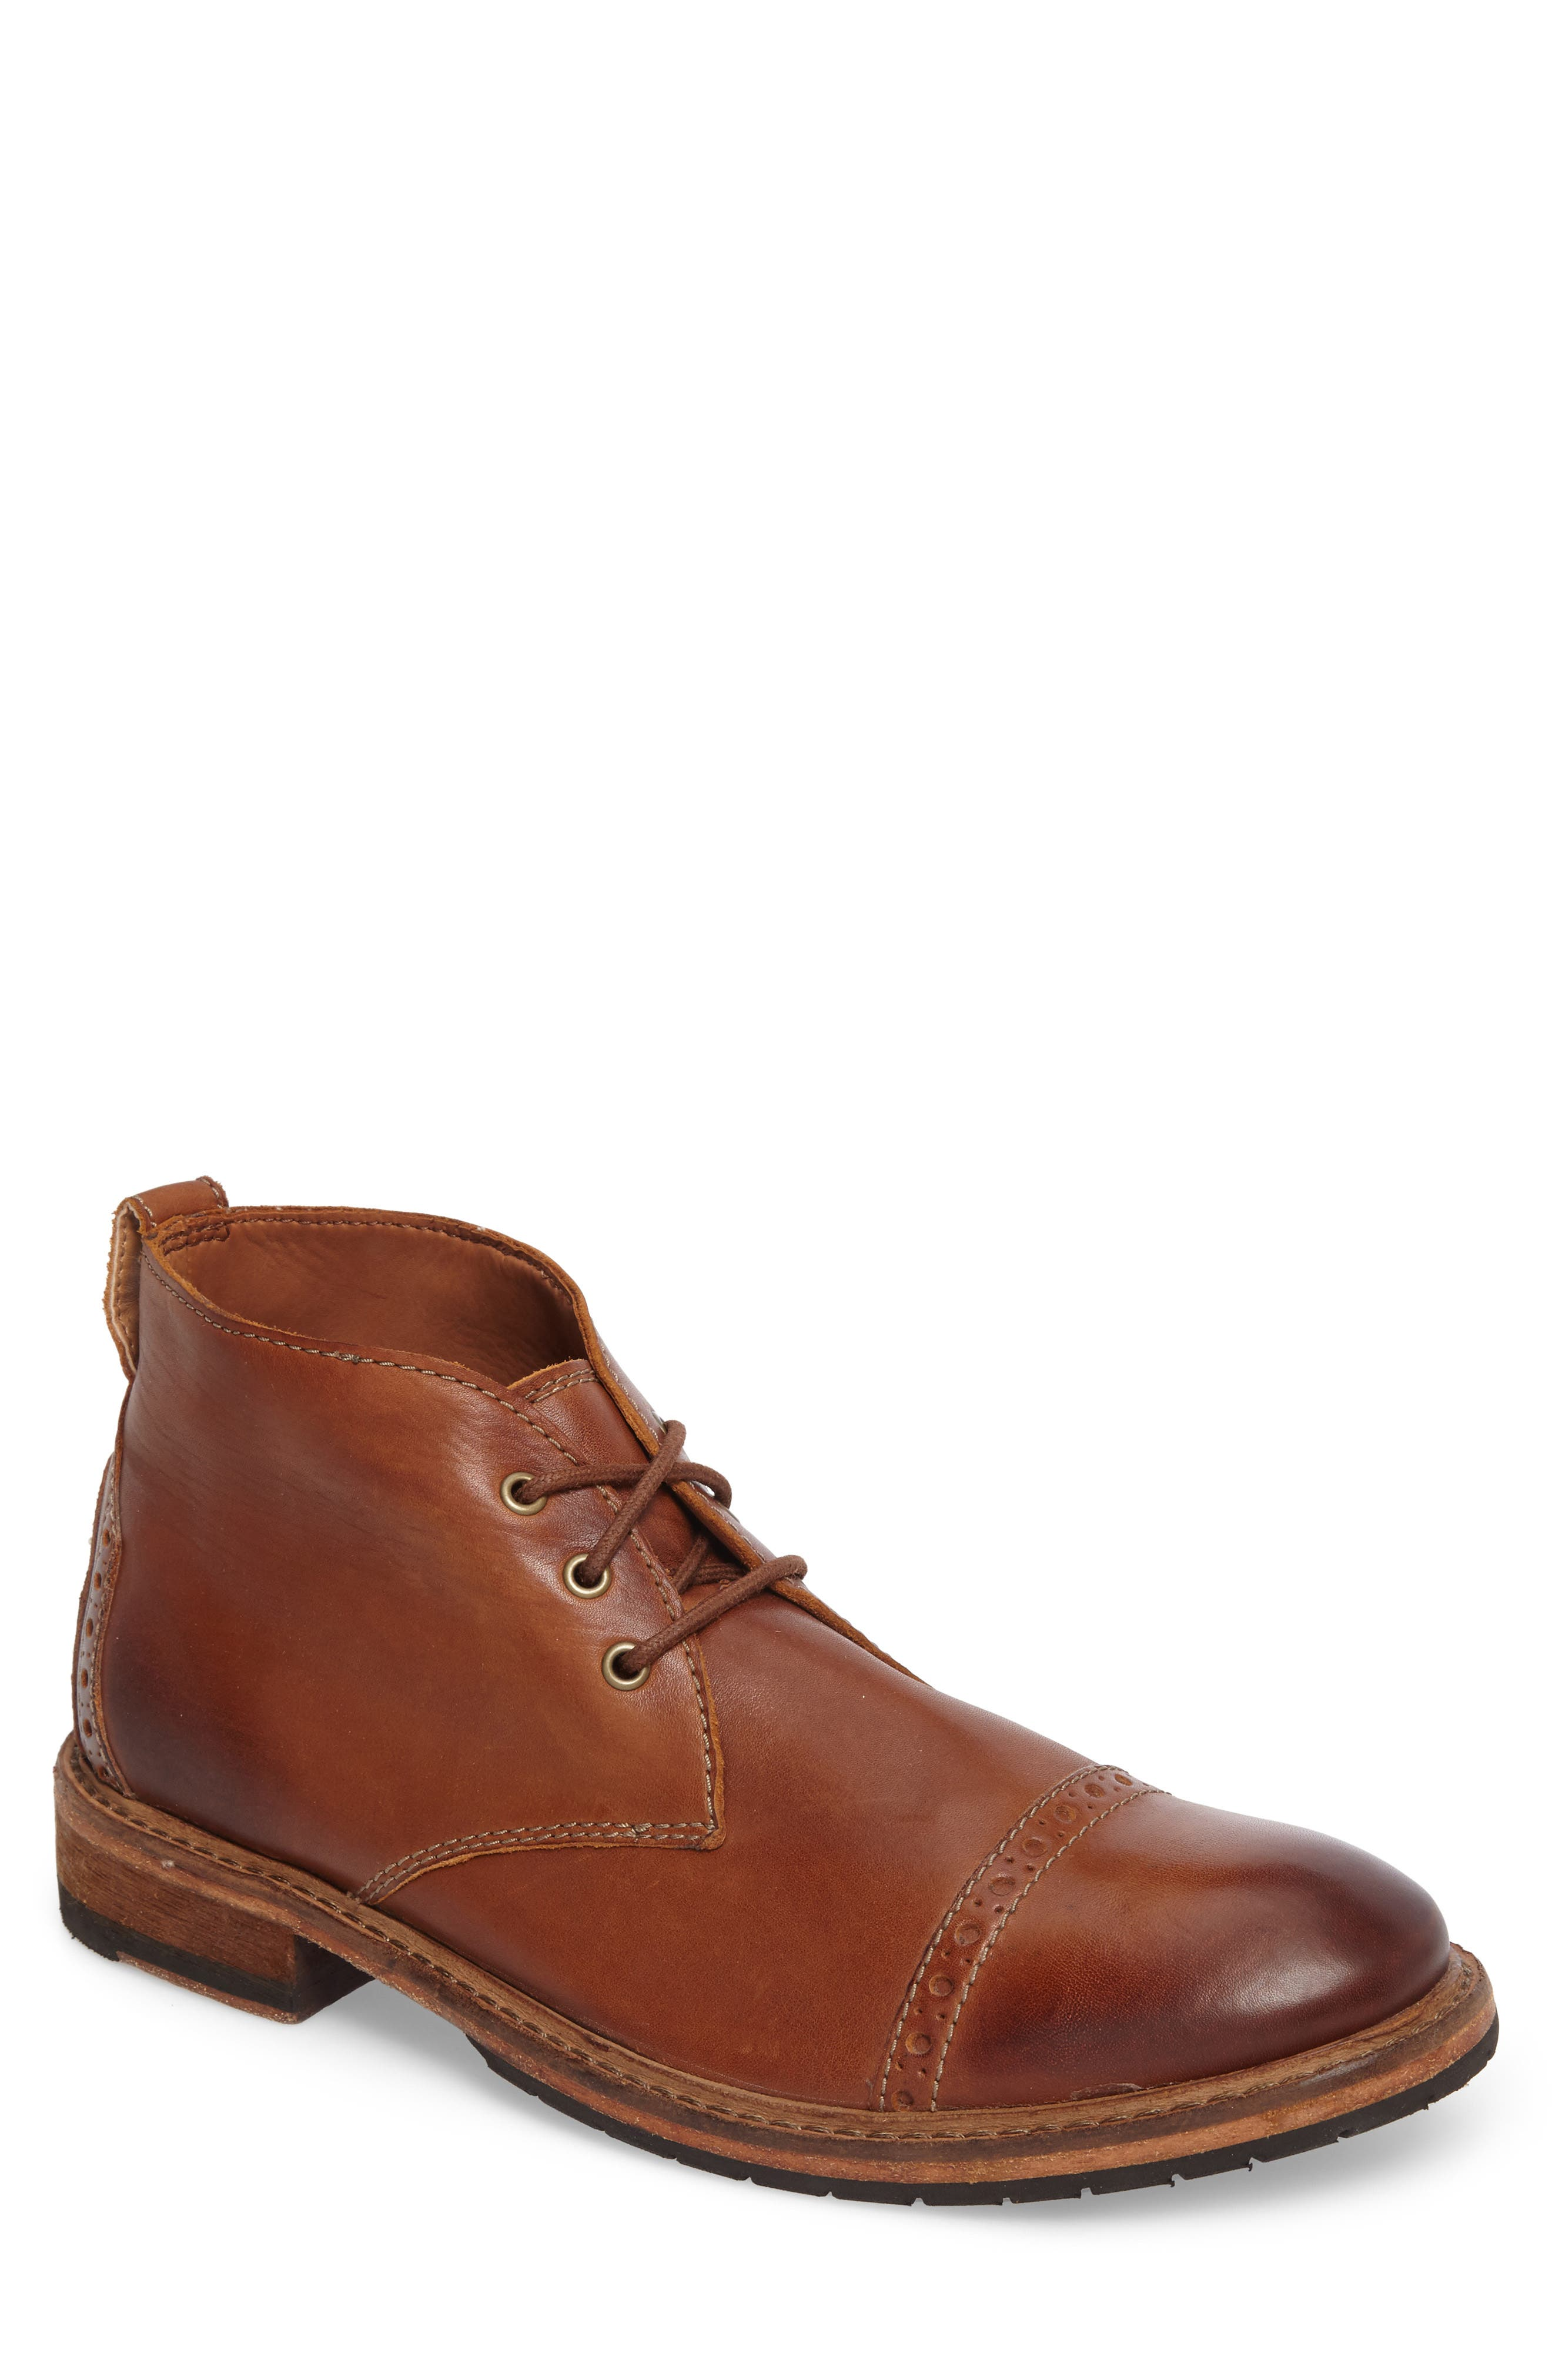 Clarkdale Water Resistant Chukka Boot,                         Main,                         color, Dark Tan Leather